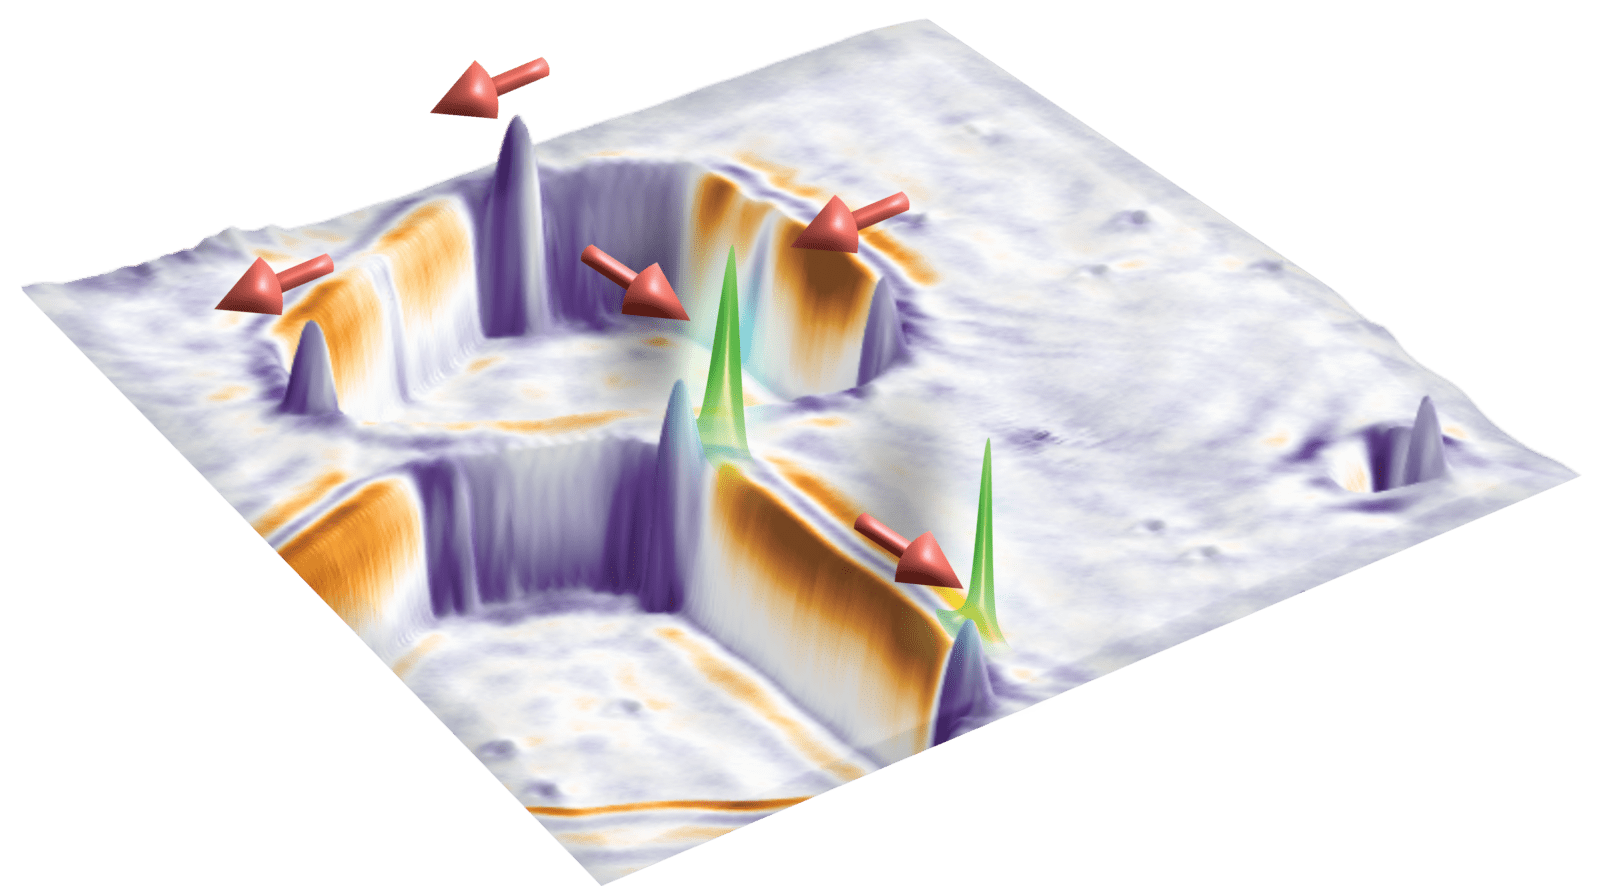 quasiparticles moving on a surface